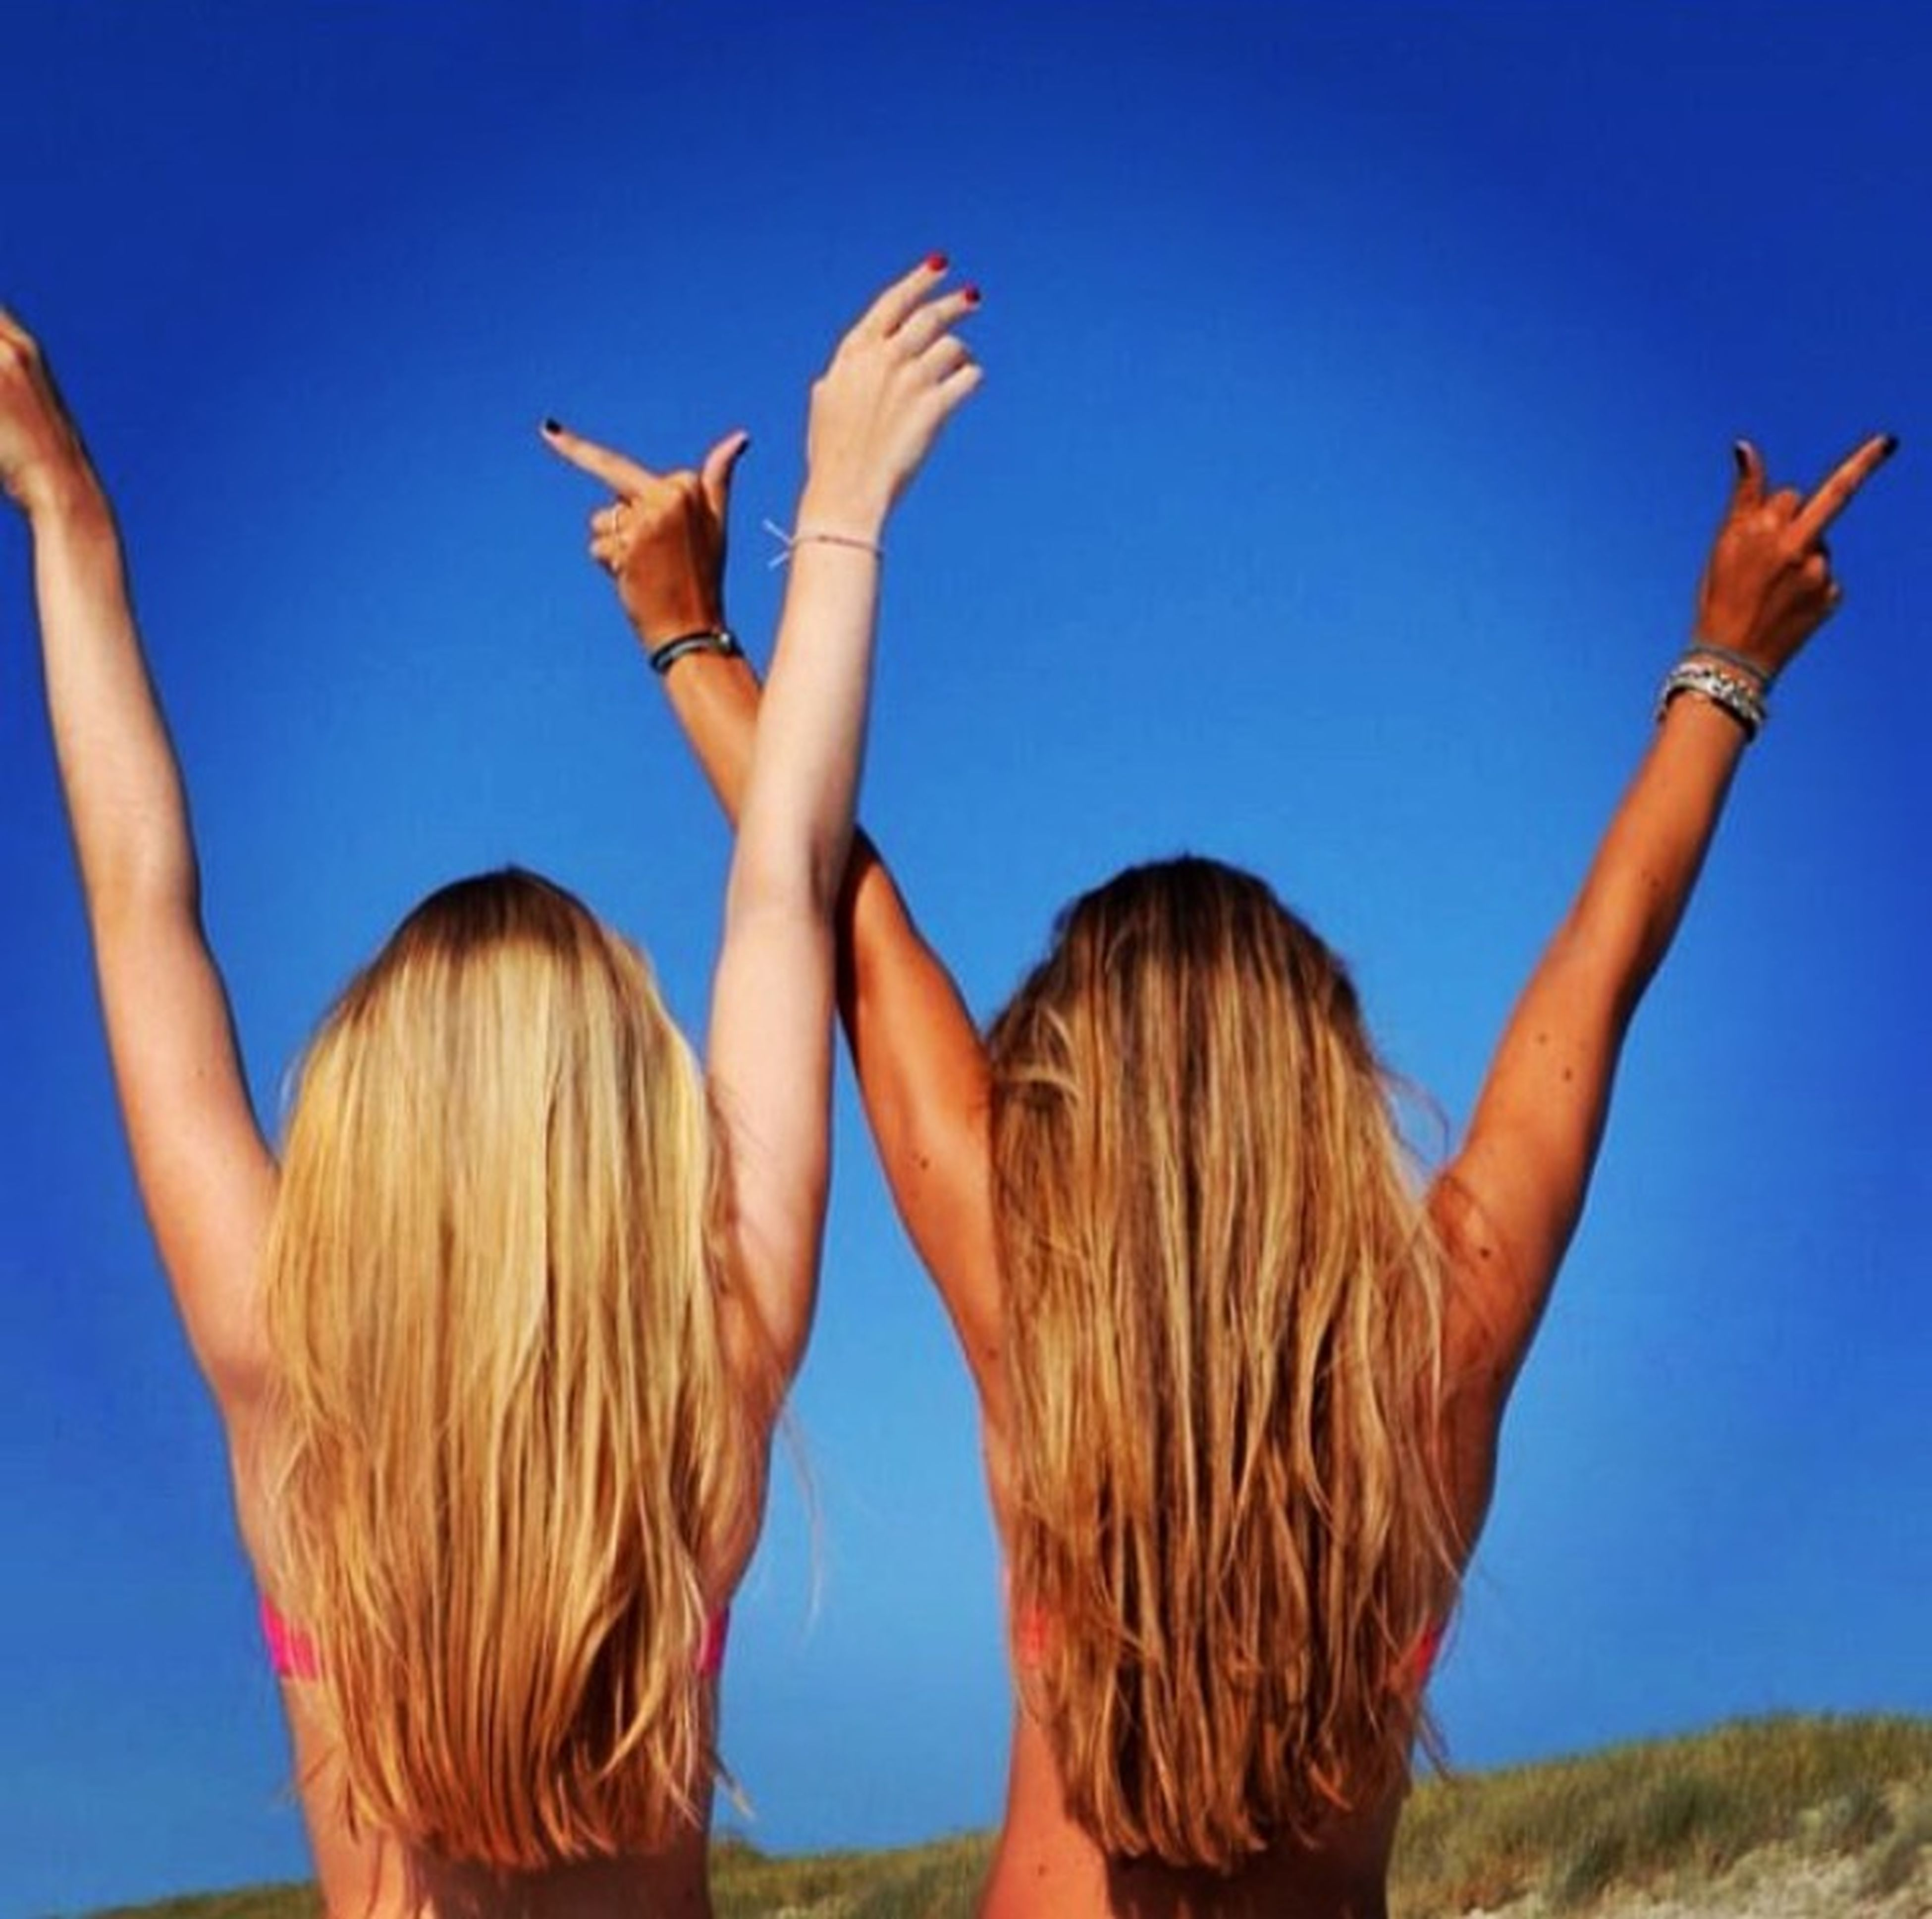 clear sky, blue, lifestyles, leisure activity, arms raised, person, young adult, young women, long hair, standing, copy space, arms outstretched, animal themes, freedom, low angle view, three quarter length, carefree, casual clothing